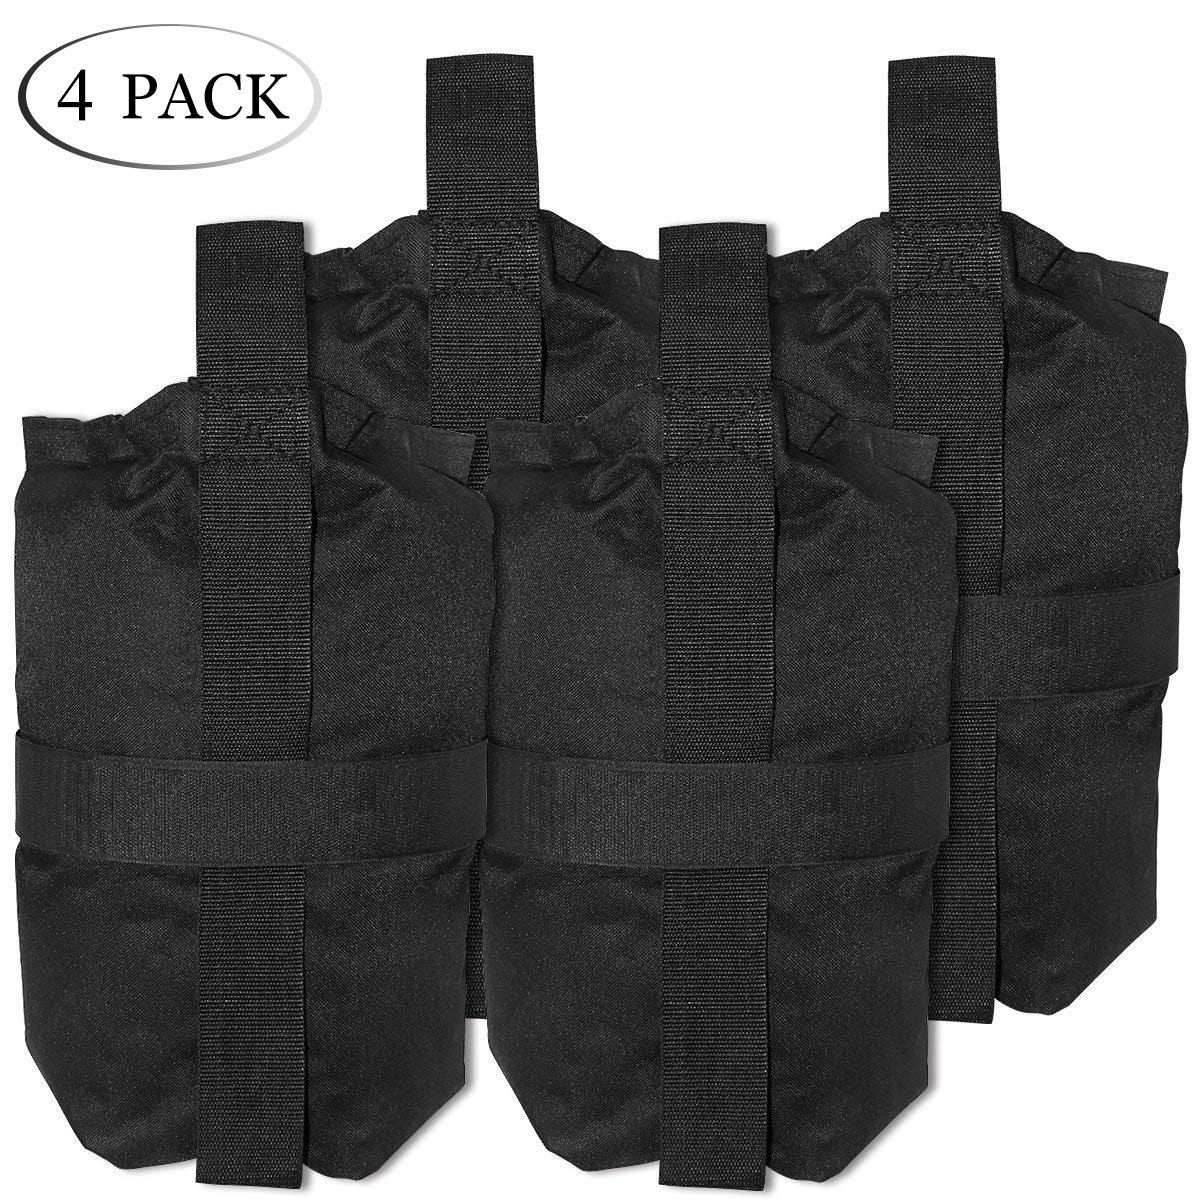 TopCamp 4 Pack Sand Bags for Tent, Weights Bags for Pop up Canopy Tent Weight Bags for Sun shelter Hold 30lb~40lb,300 cu in capacity